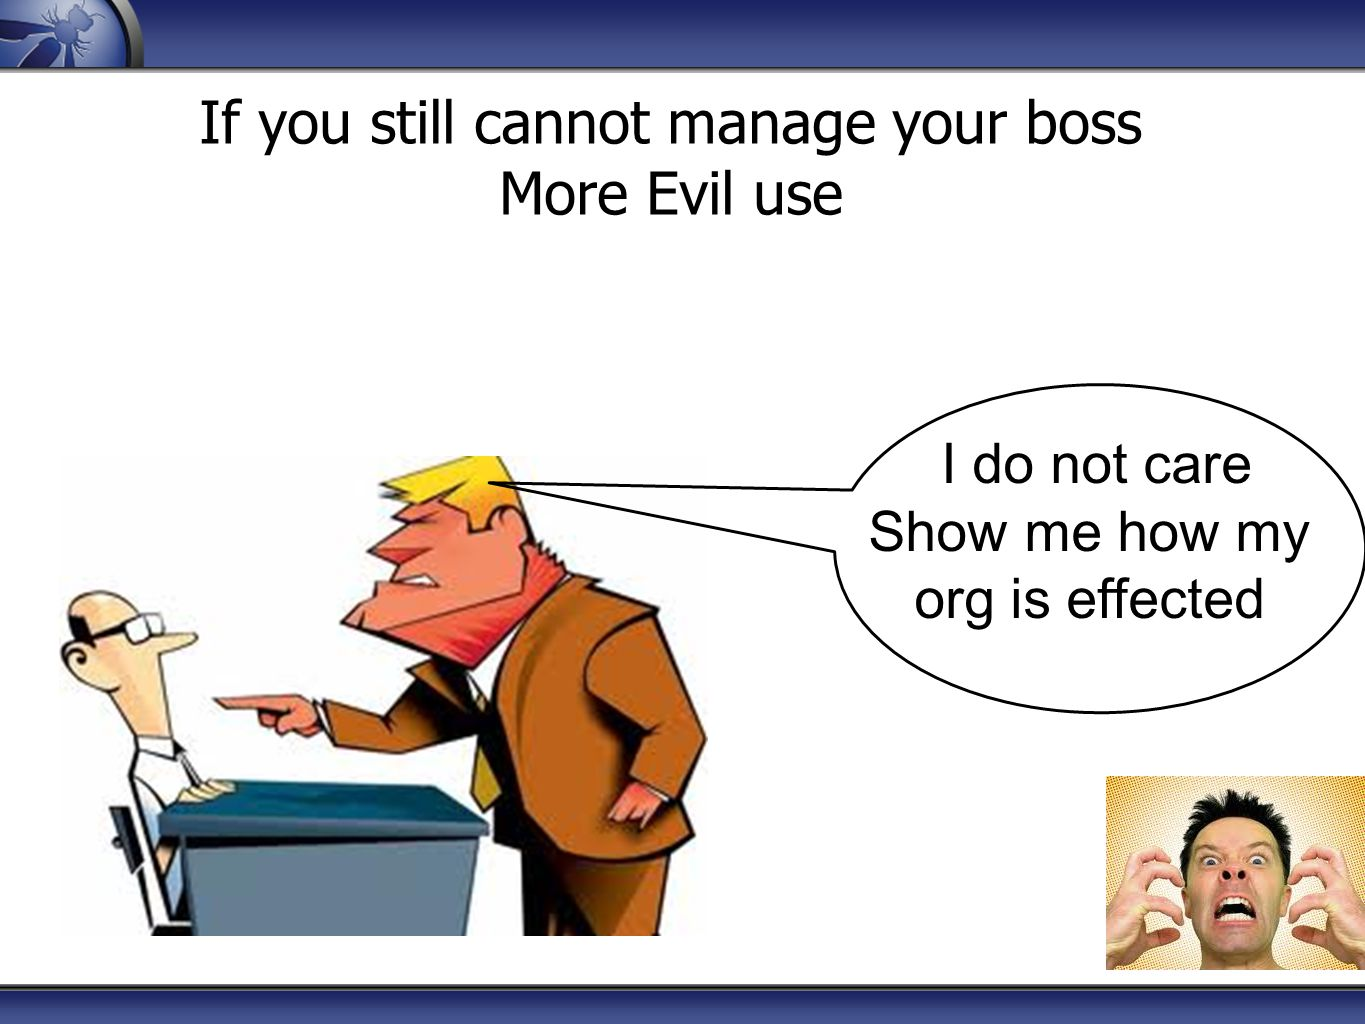 If you still cannot manage your boss More Evil use I do not care Show me how my org is effected